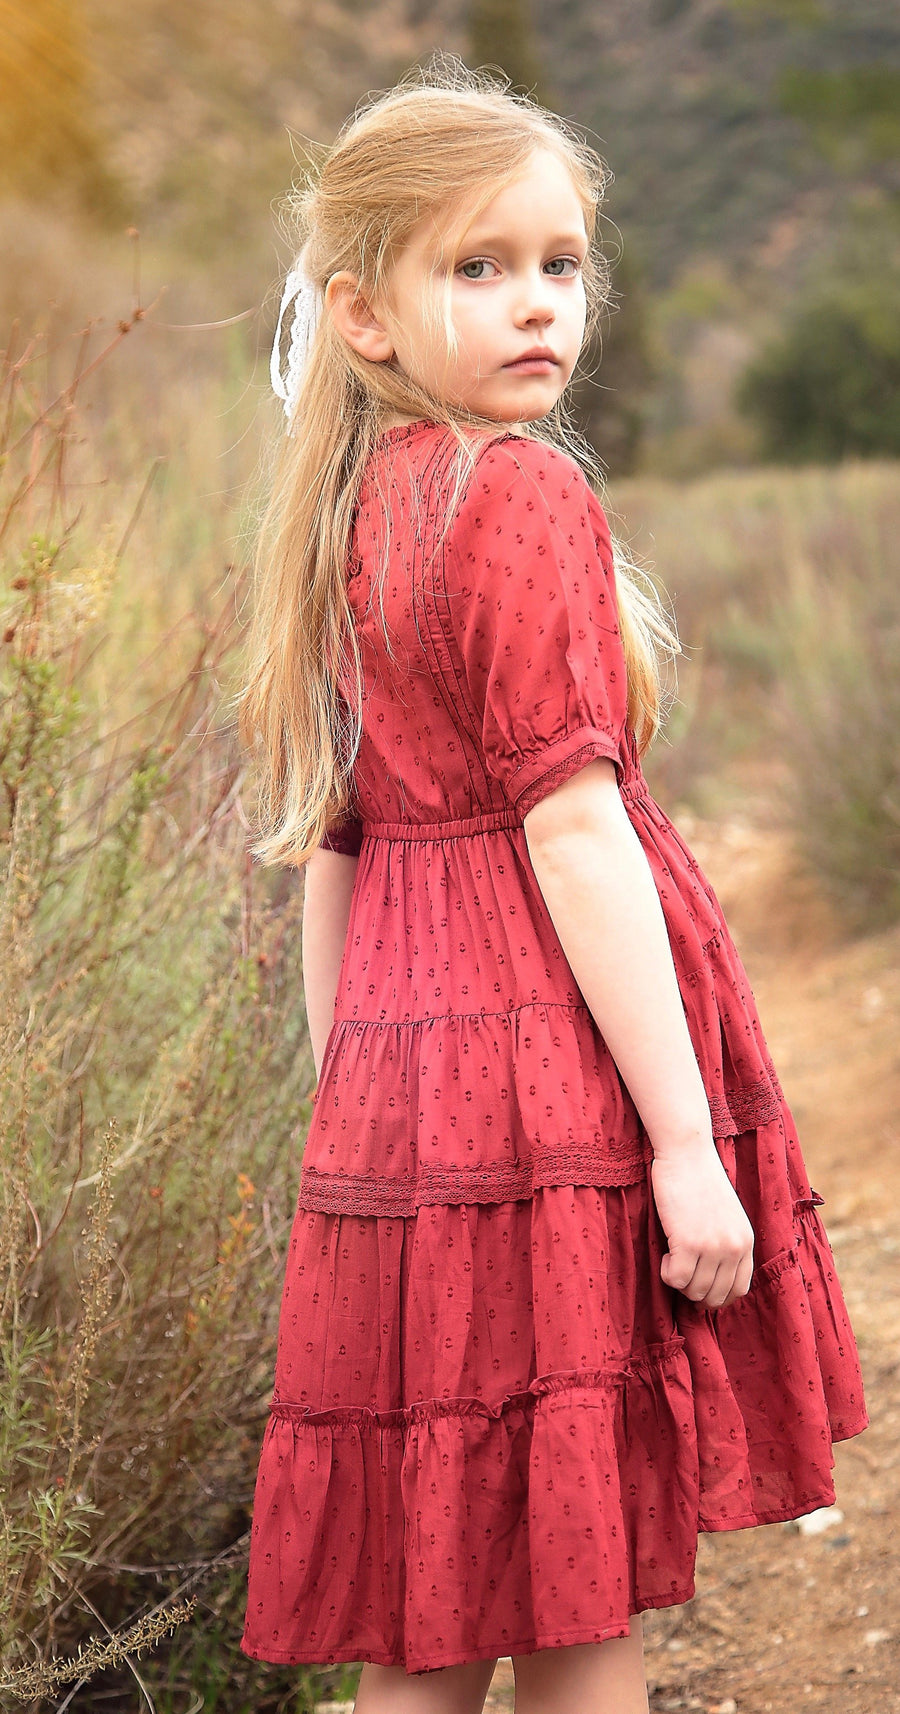 dreamy rosalynn dress - Pink and Brown Boutique